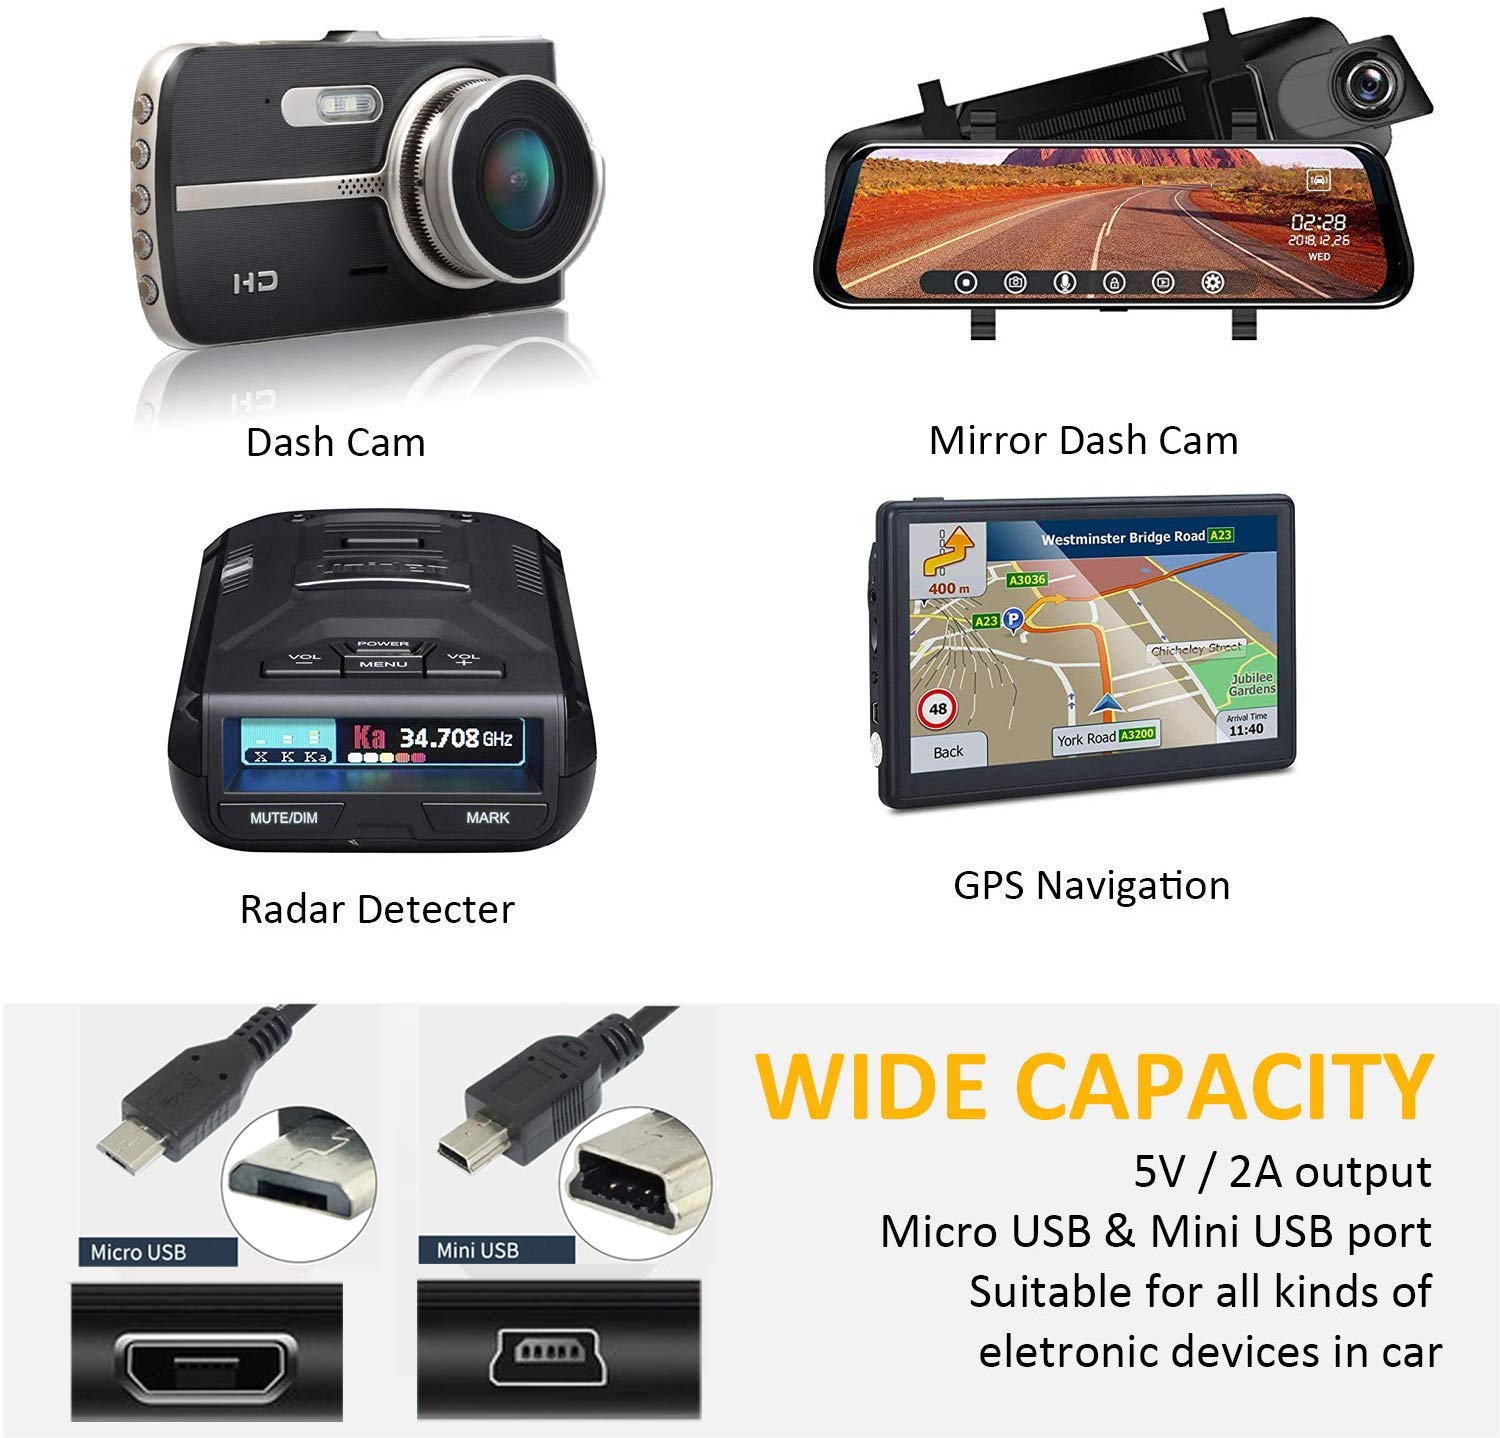 for Dash Camera and GPS Charger Power Cord(11.5ft) Dash Cam Charger Micro USB /& Mini USB Cable Dosili car Dash cam USB Power Cord